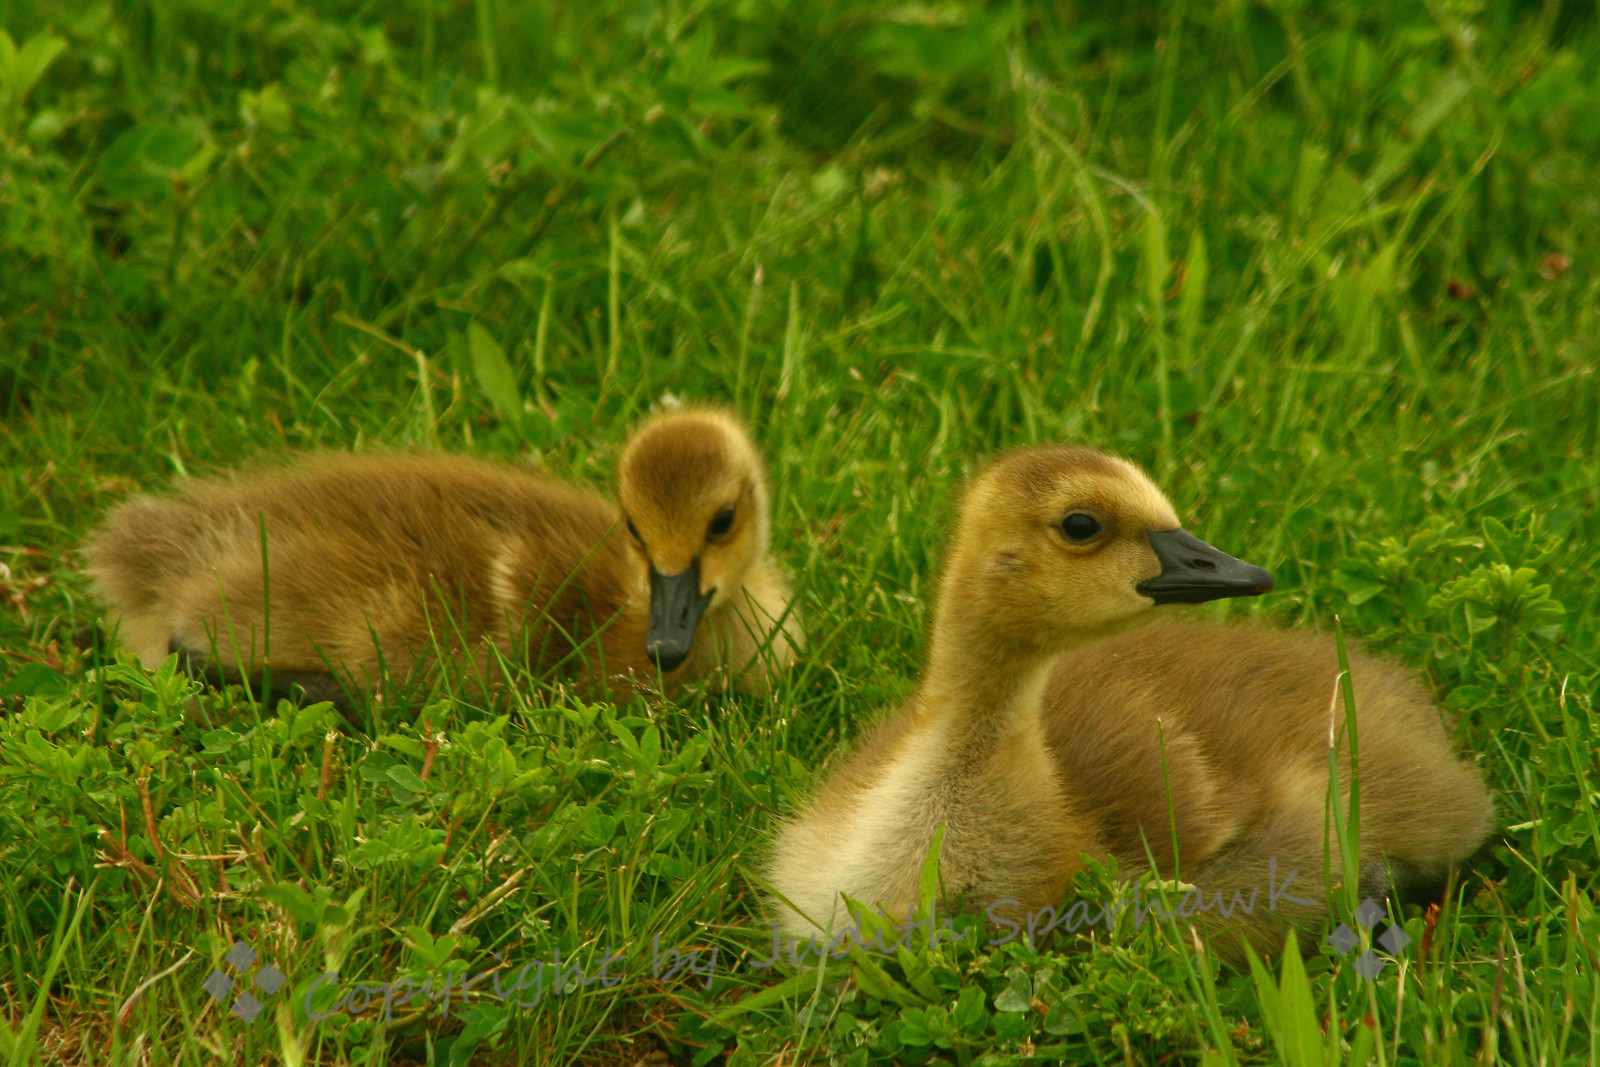 The Goslings ~ These cute and fuzzy Canada Geese goslings didn't seem to mind having their portraits taken.